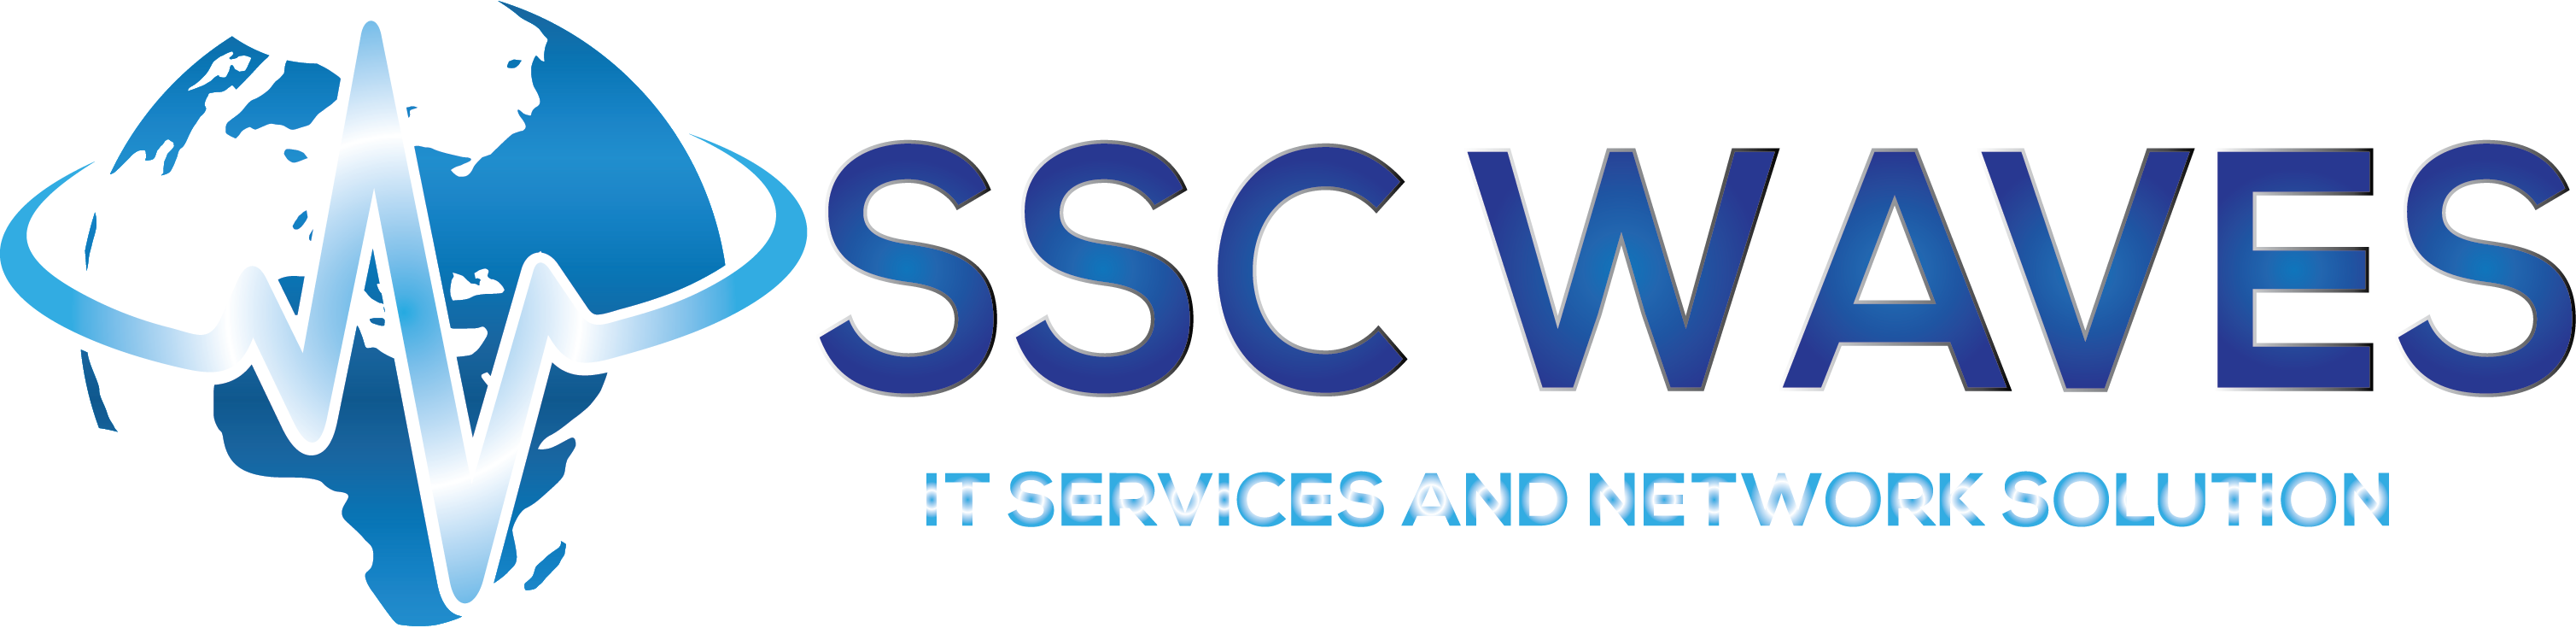 IT Services and Network Solution | SSCWAVES.COM